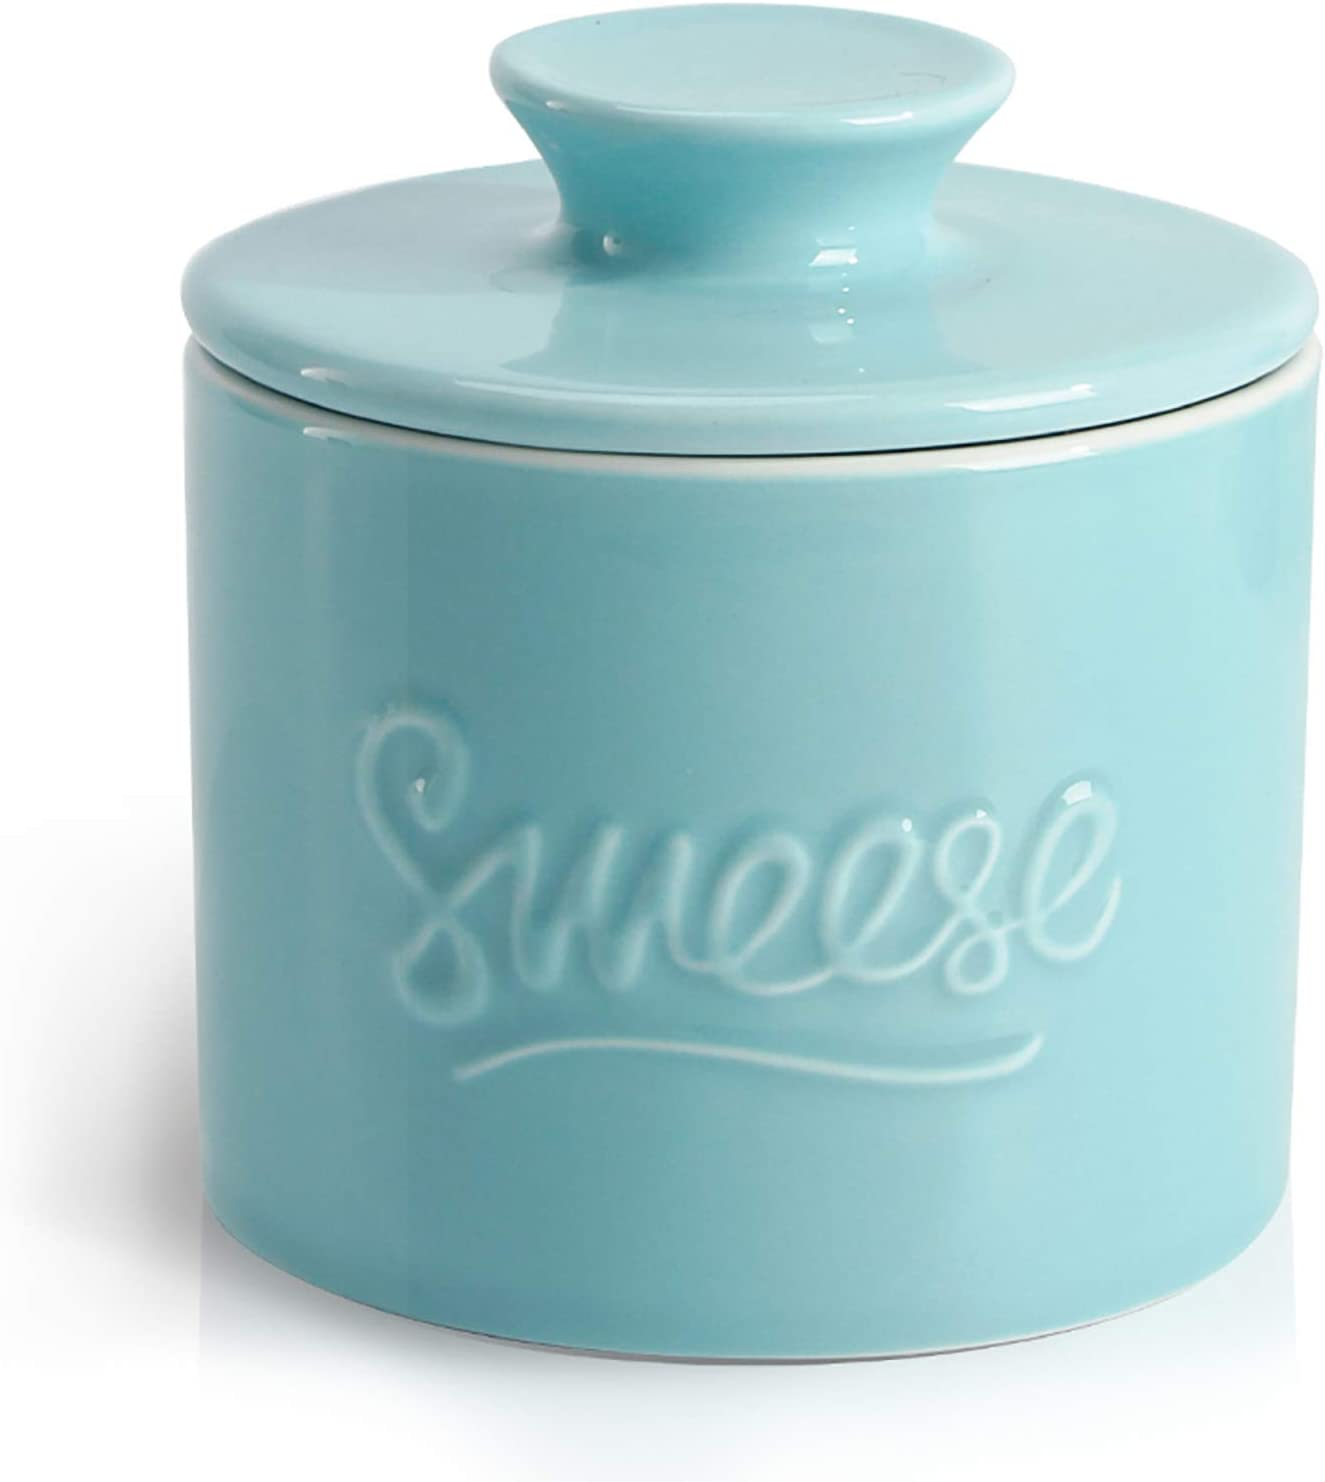 Red Sweese 304.104 Porcelain Butter Keeper Crock No More Hard Butter French Butter Dish Perfect Spreadable Consistency